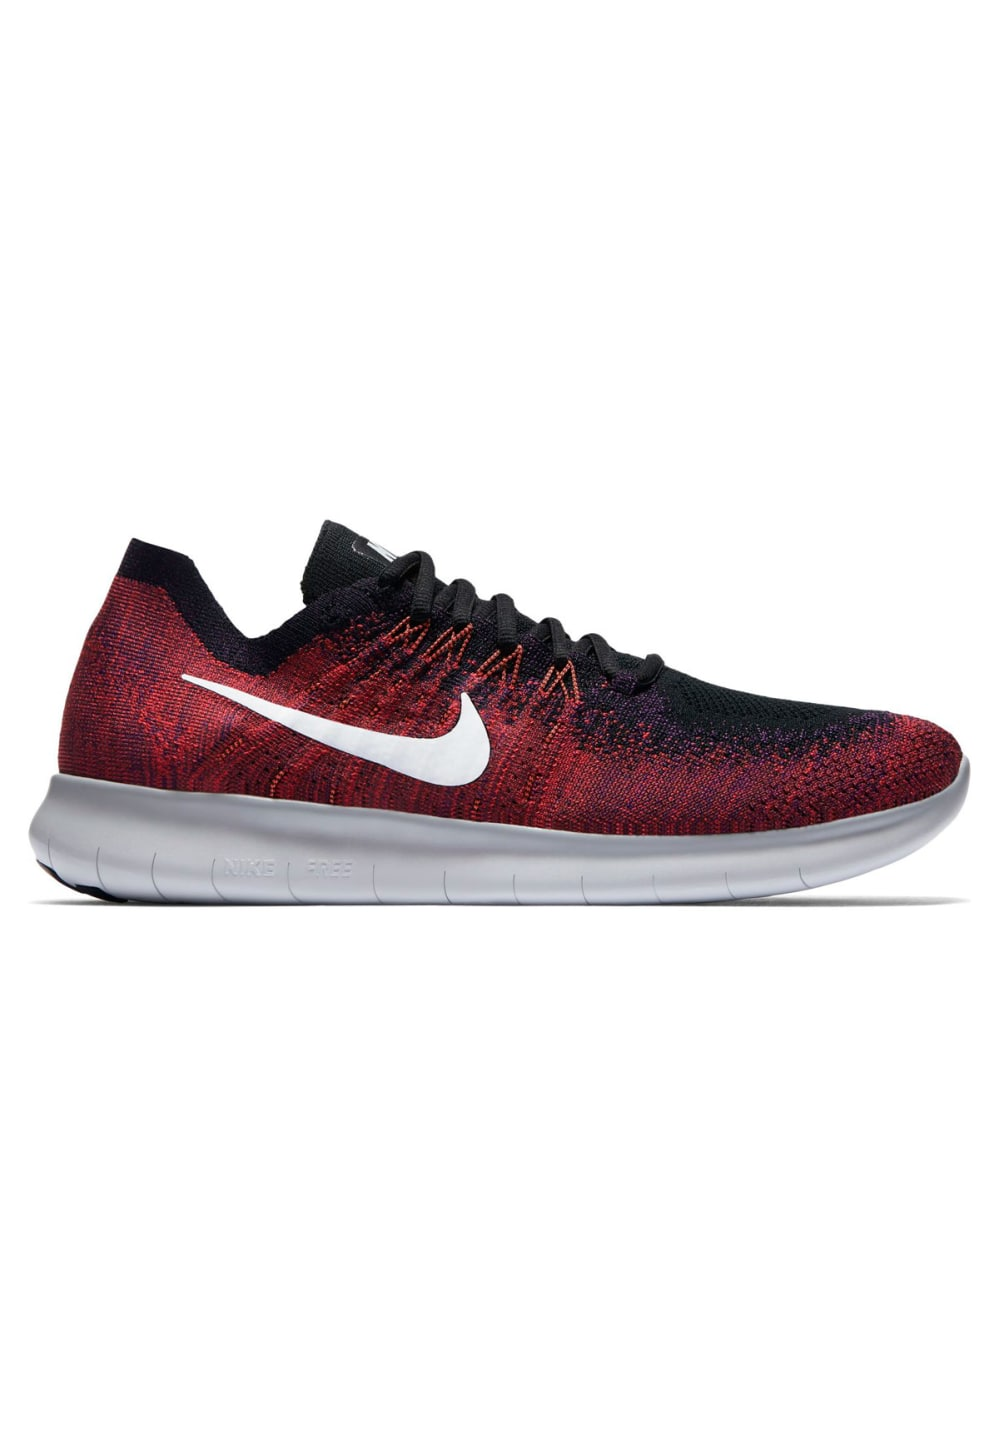 info for 2c286 d465e Nike Free RN Flyknit 2017 - Running shoes for Men - Red